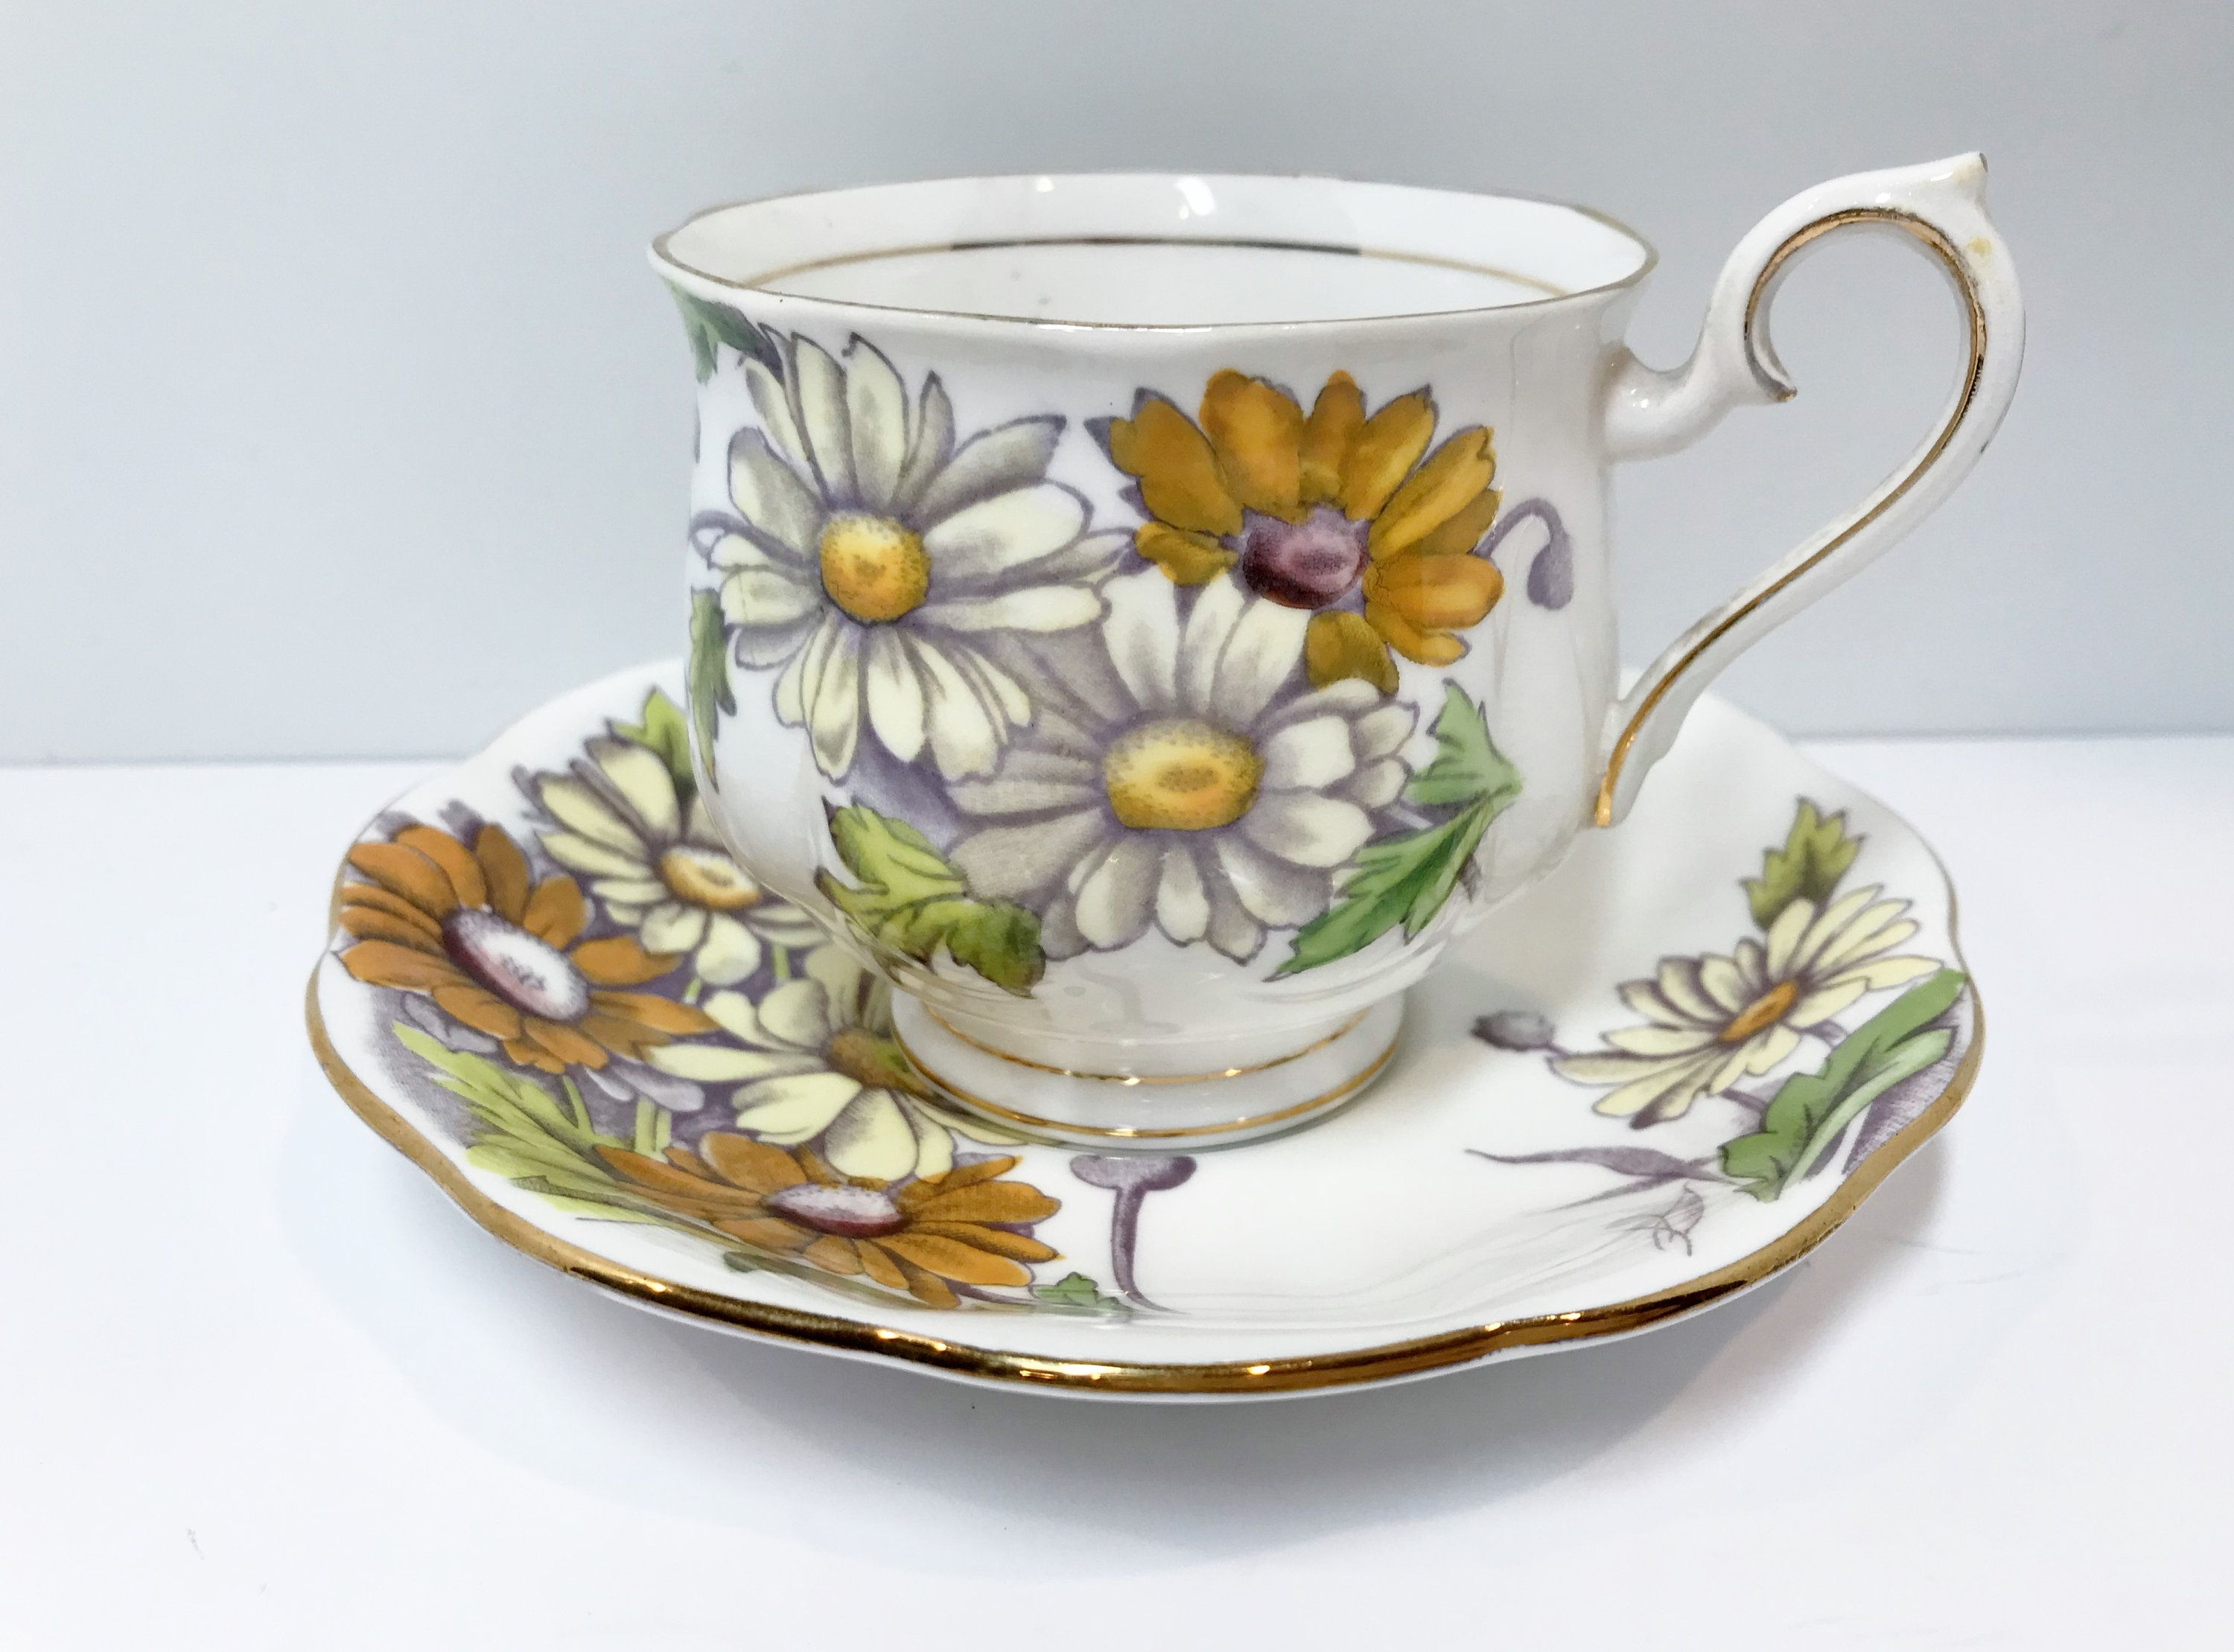 Daisy Tea Cup and Saucer by Royal Albert Bone China, April Birthday Cup, Hand Painted Cups, English Teacups, Antique Tea Cups Vintage #teacups